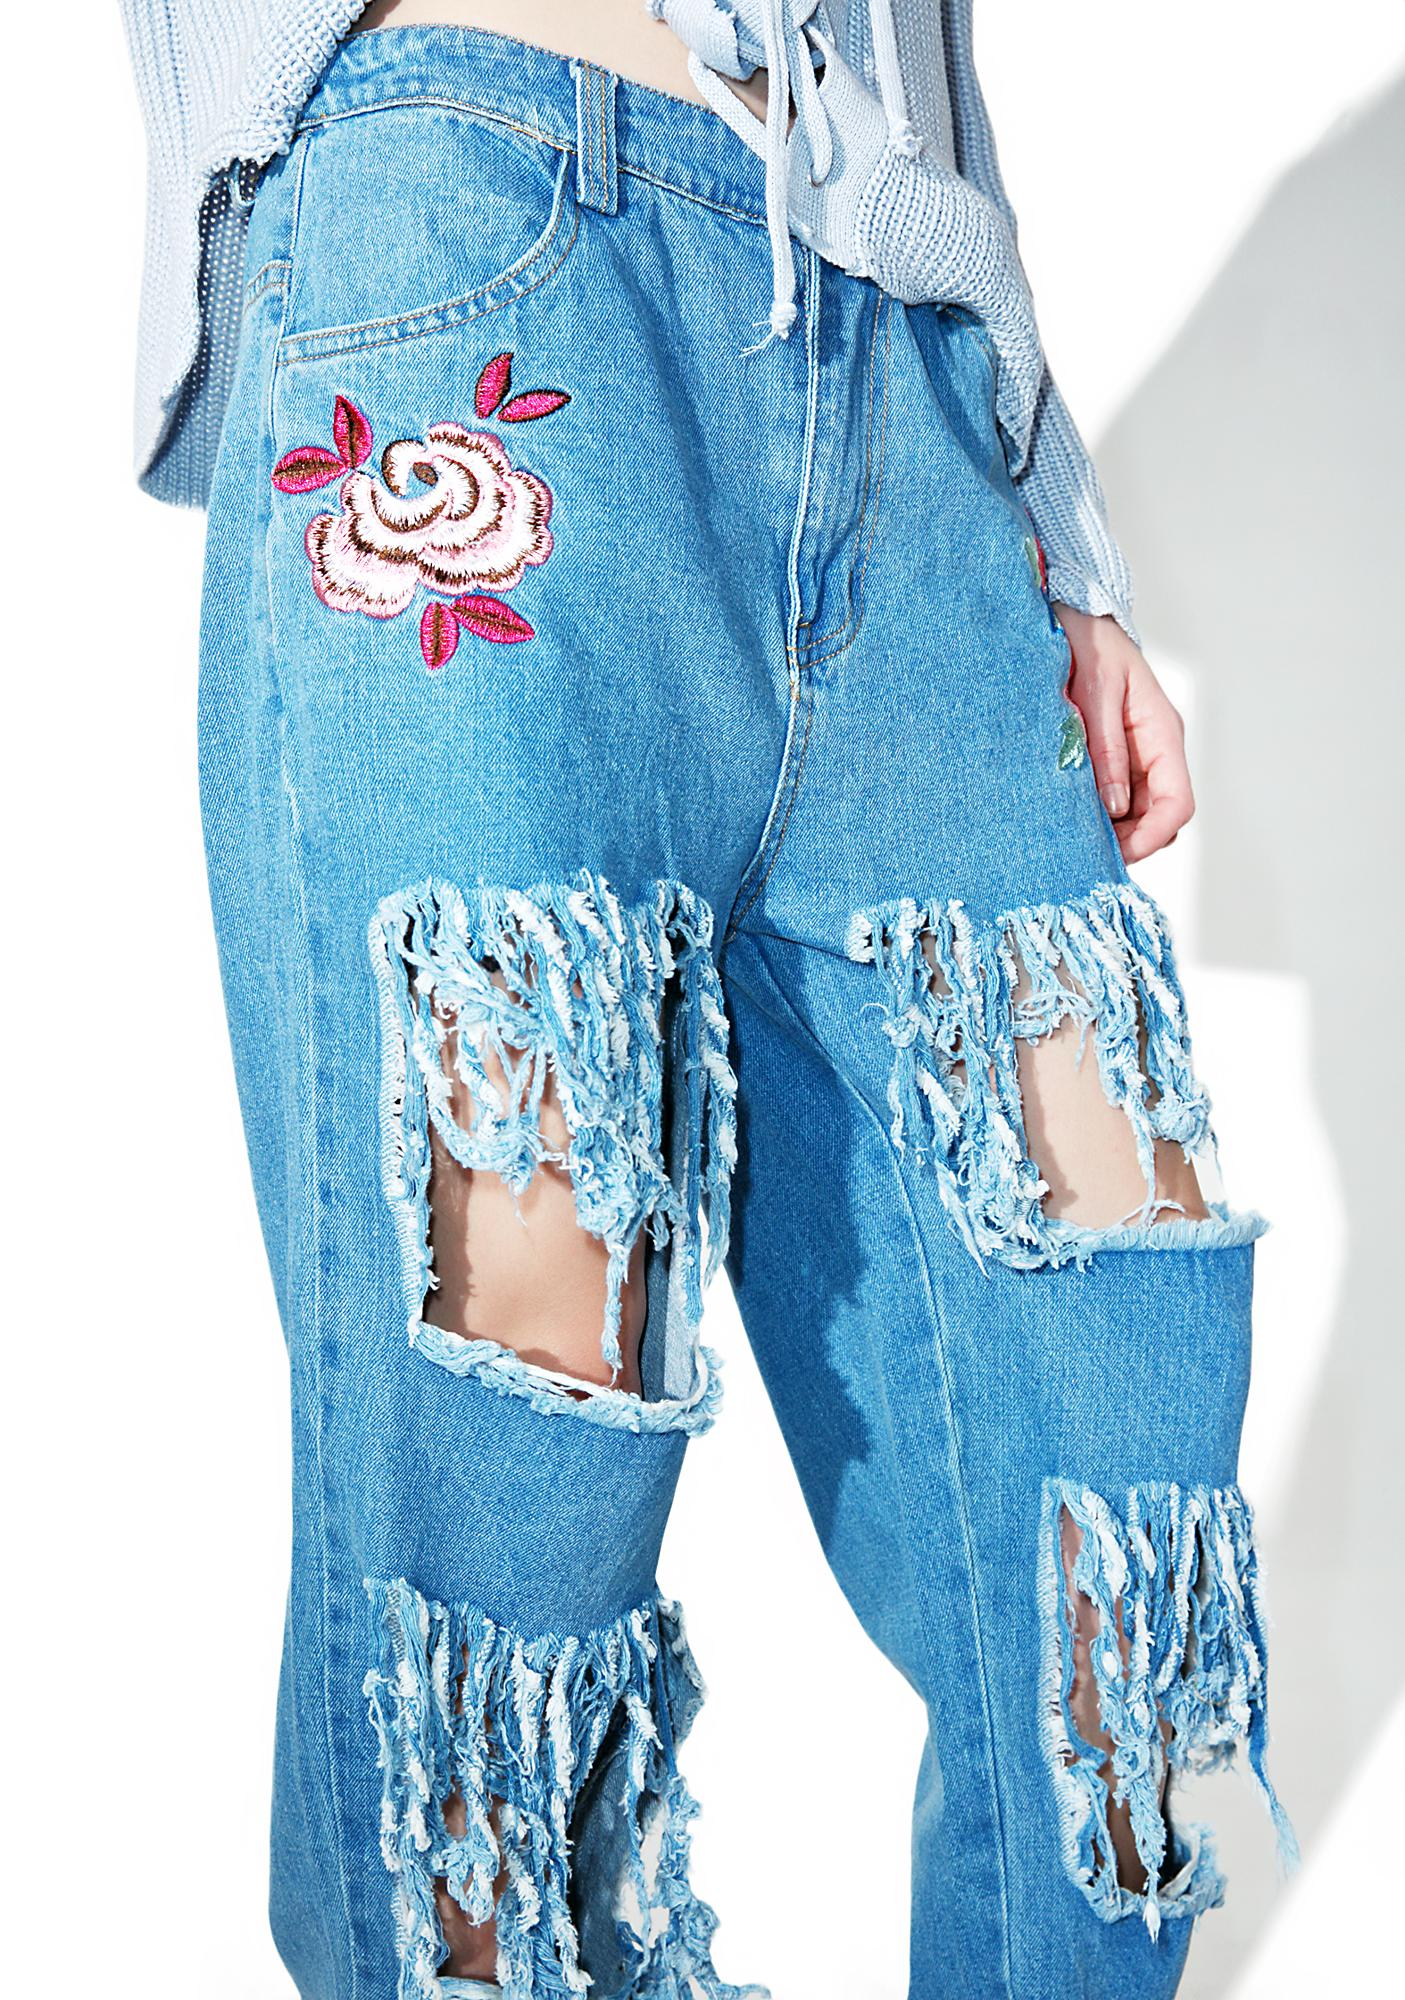 Encore Distressed Denim Jeans